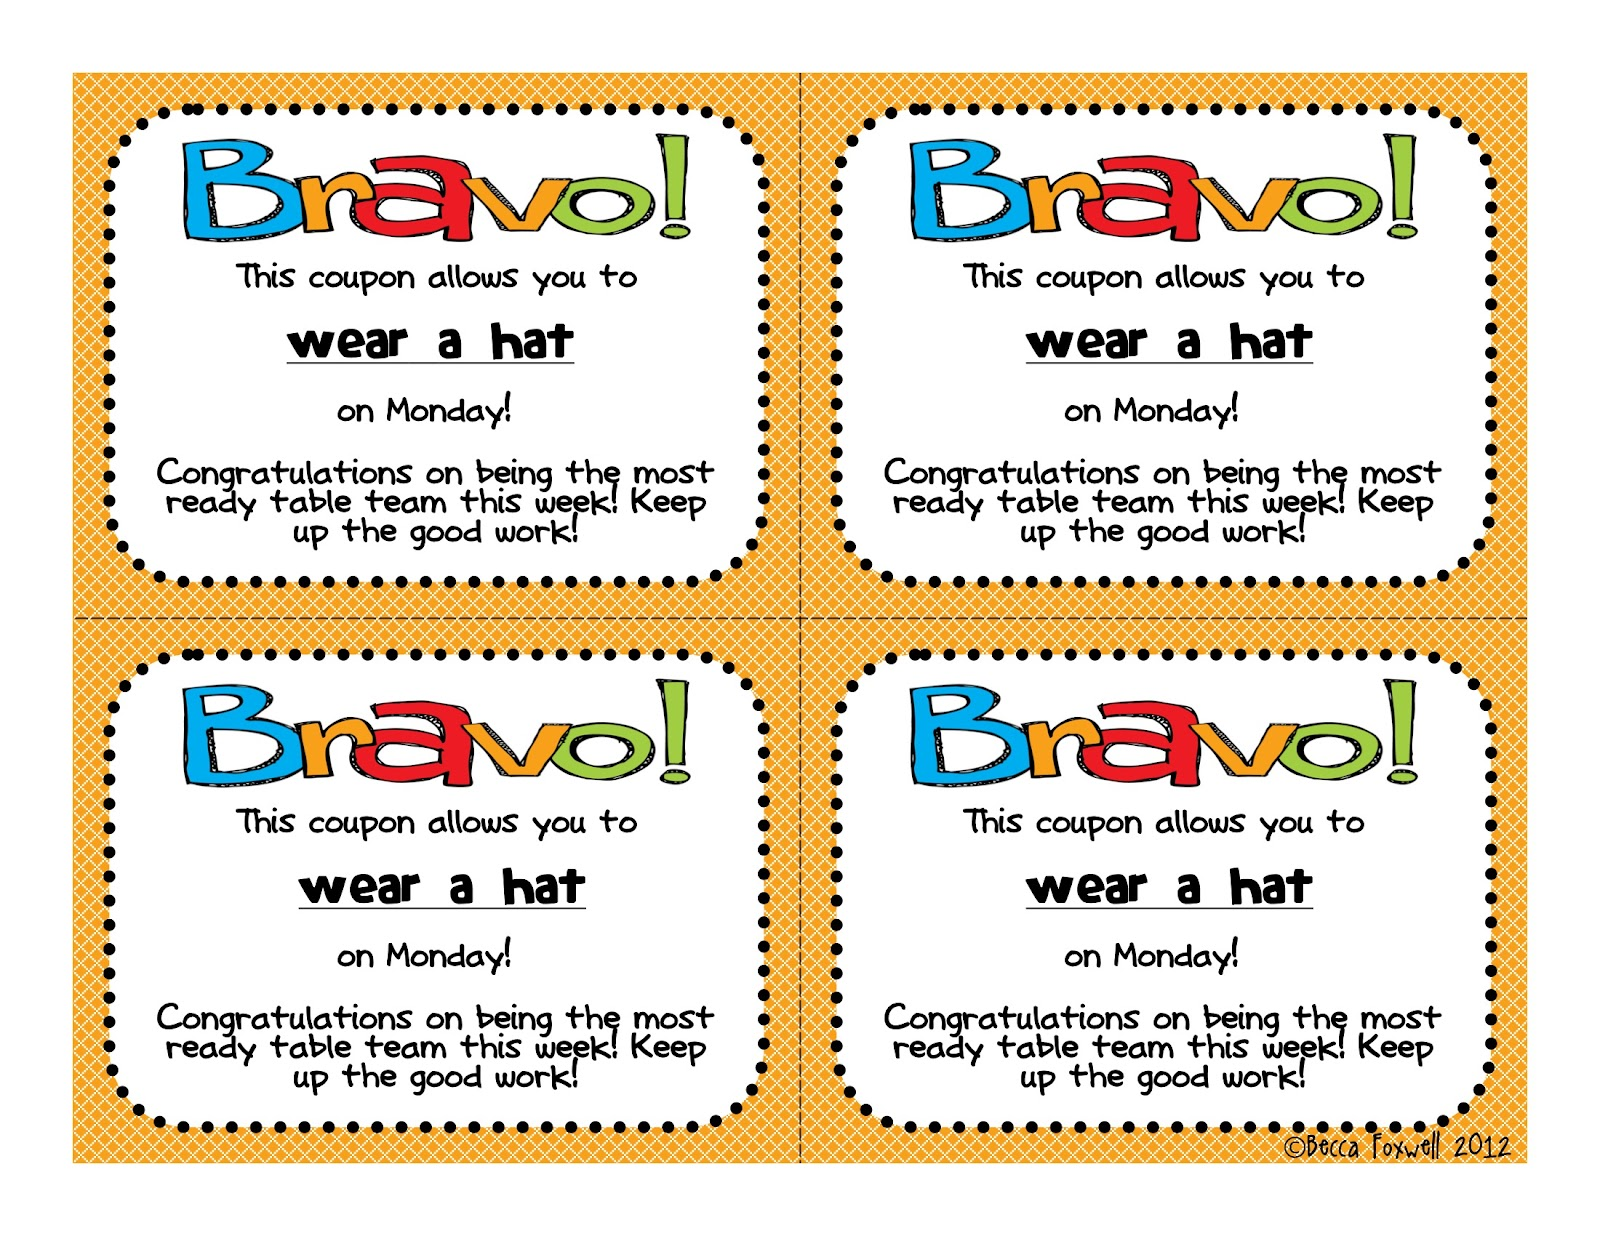 bravo board and reward coupons bie classroom management the table that wins gets to decide on which one of the rewards they want they then take the coupon home on friday for their family to see and get to enjoy